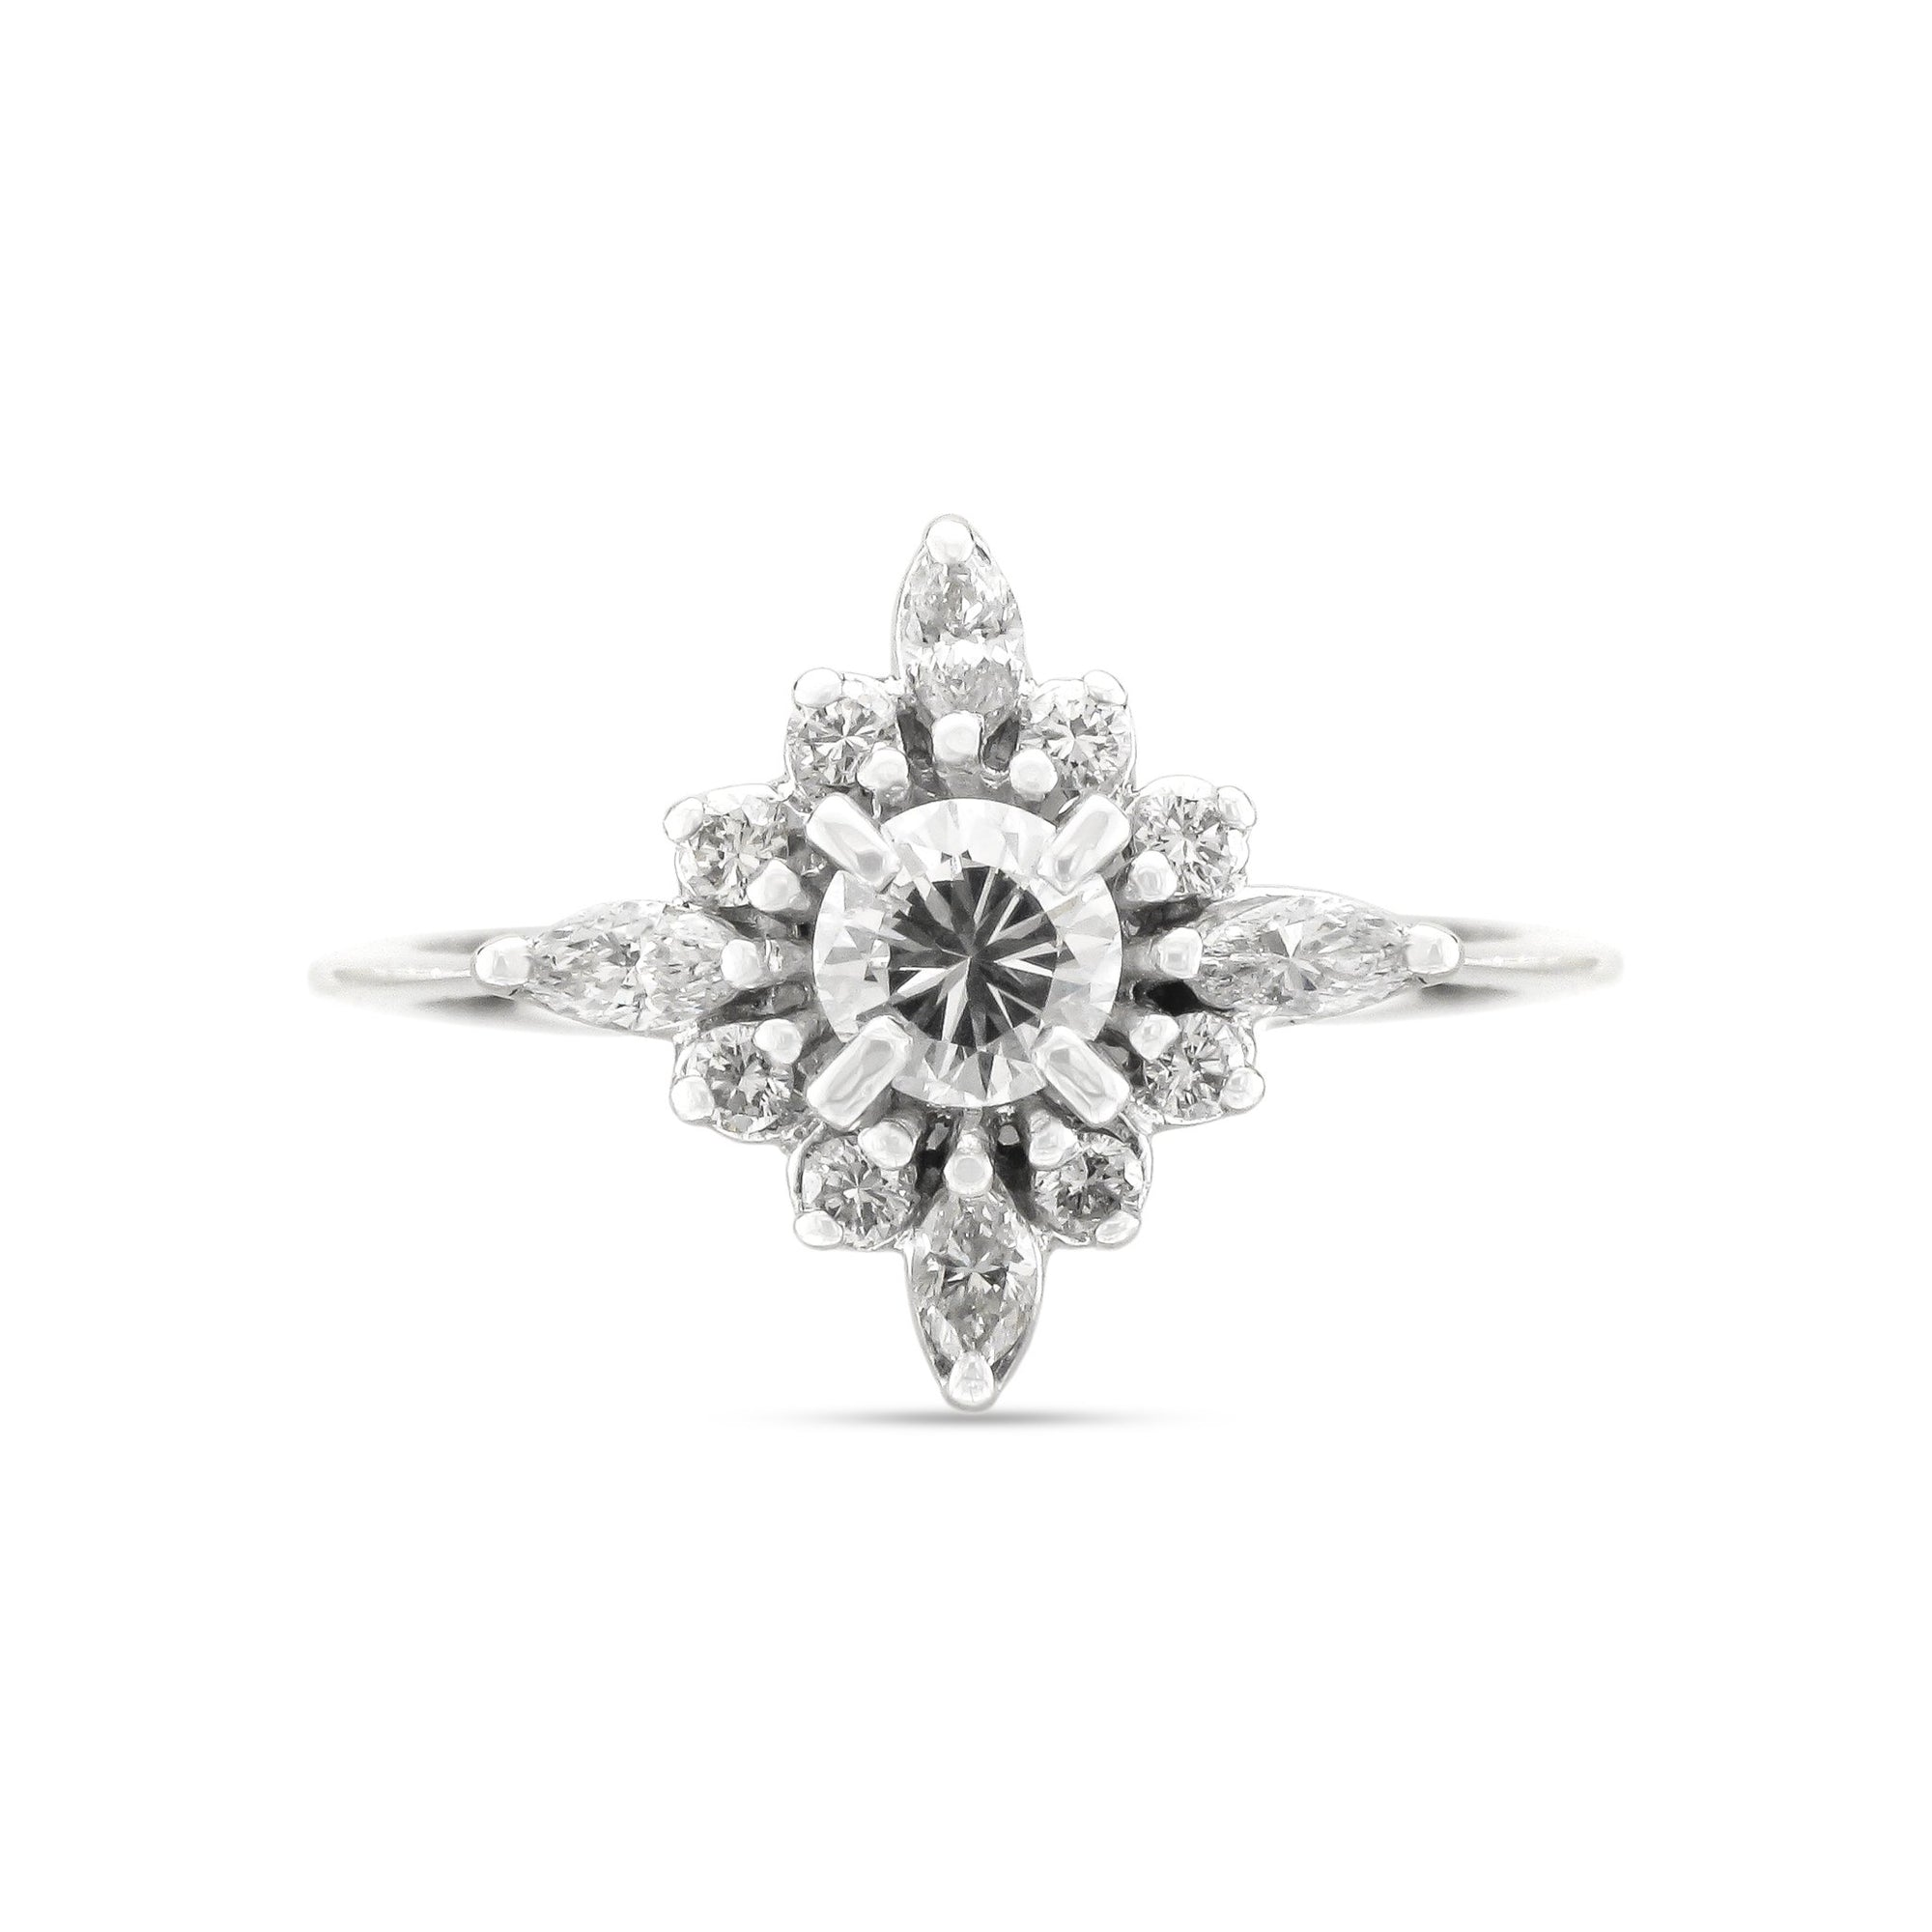 Vintage 18ct White Gold Diamond Cluster